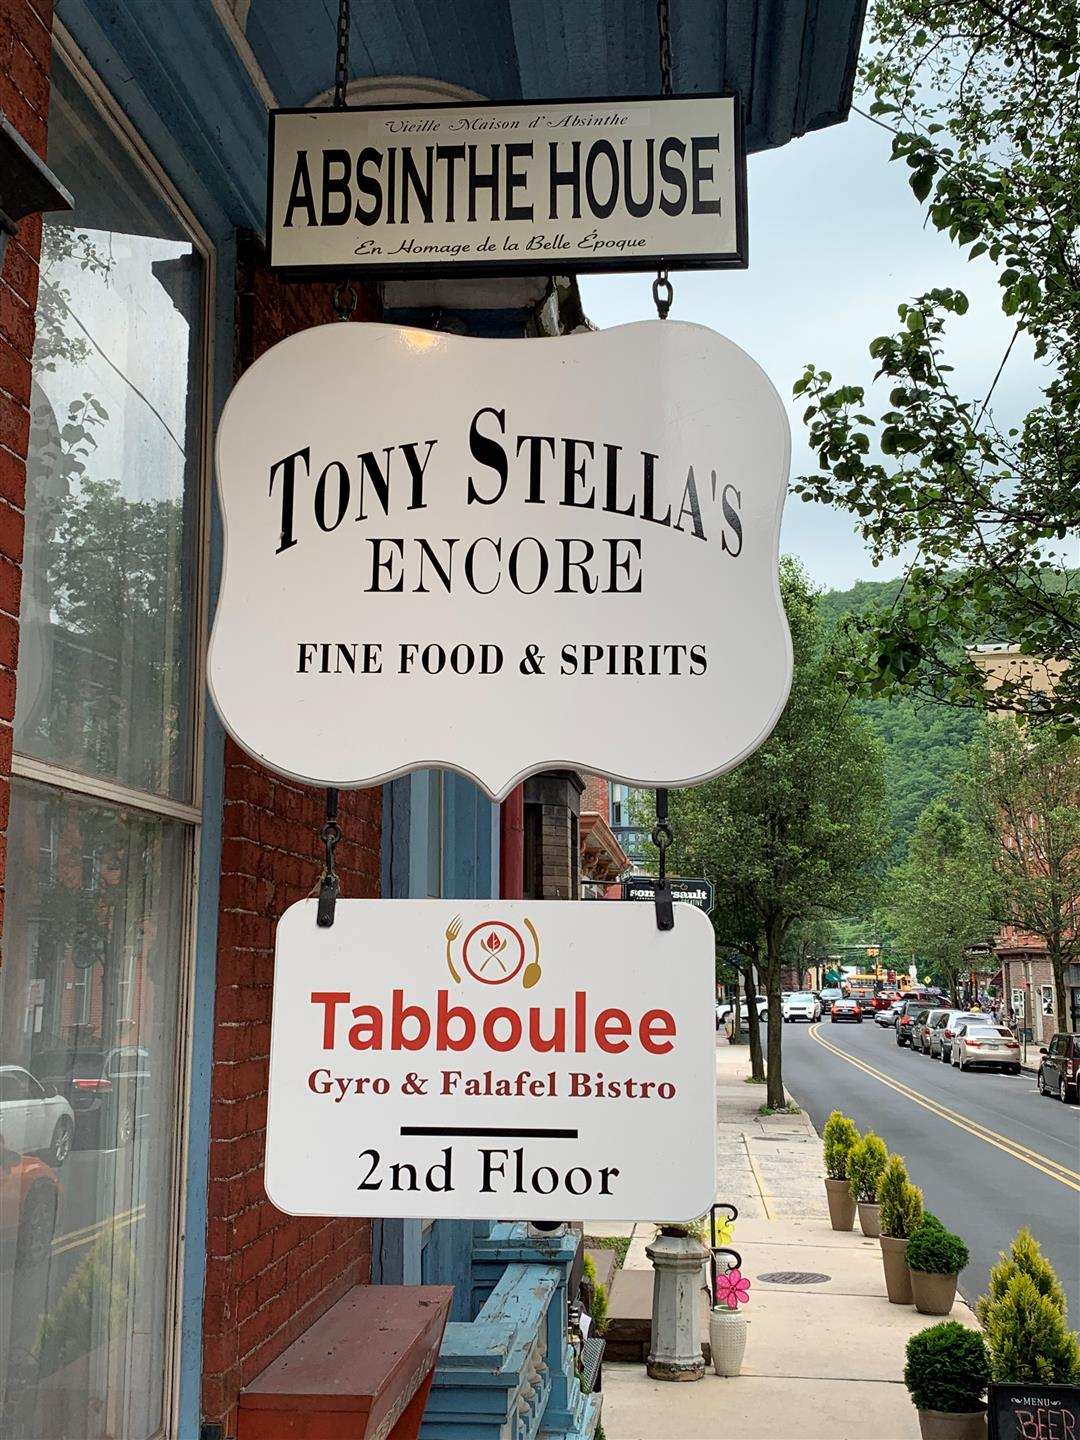 Absinthe House sign, Tony Stella's Encore Fine Food & Spirits sign, and Tabboulee Gyro Falafel Bistro 2nd floor sign